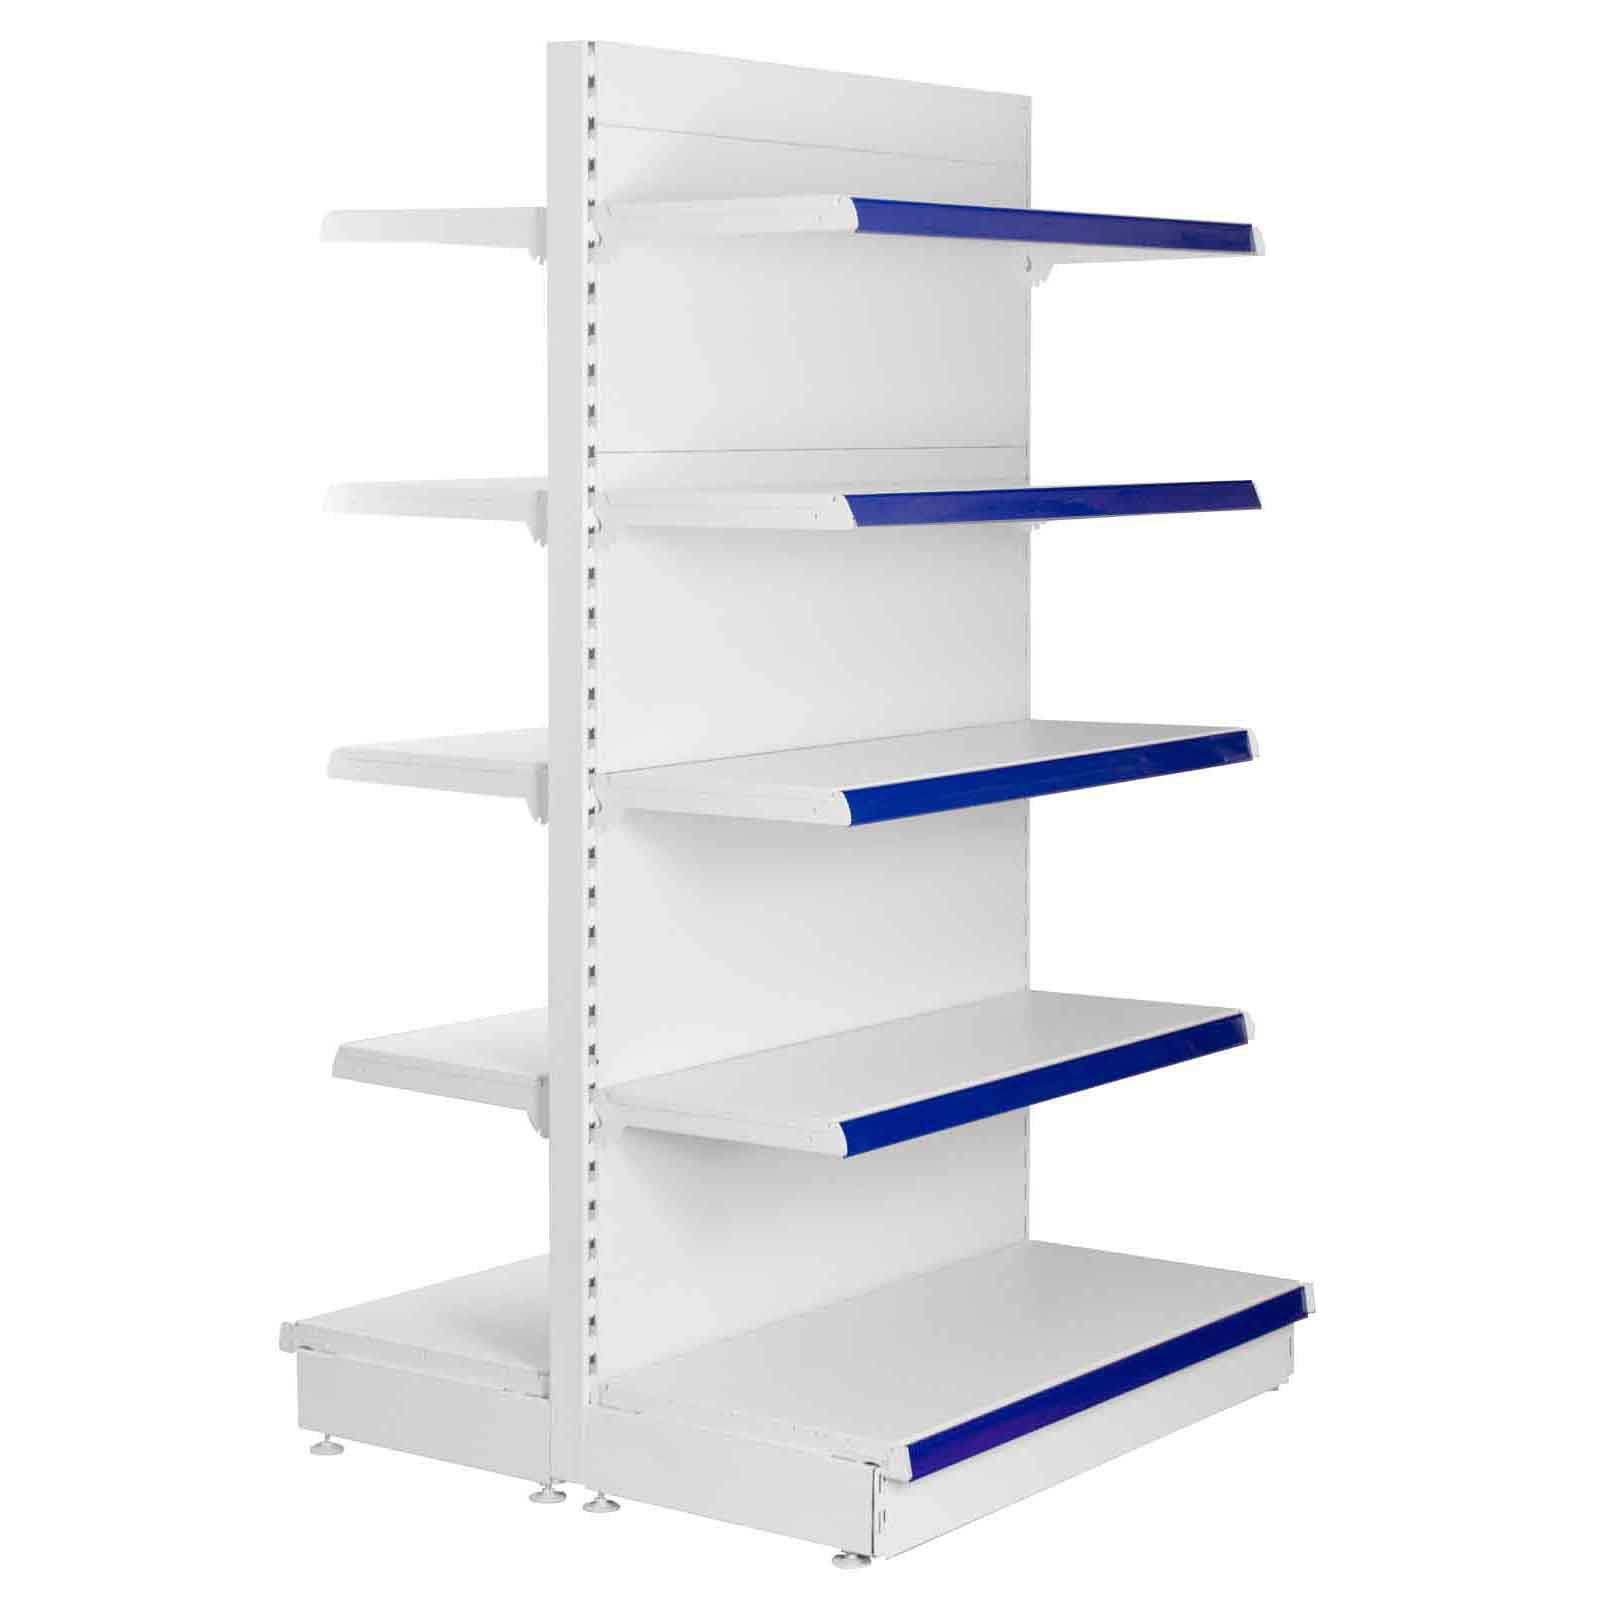 Storage Racks Supermarket Display Shelving Gondola Shelf Pegboard Storage Racks